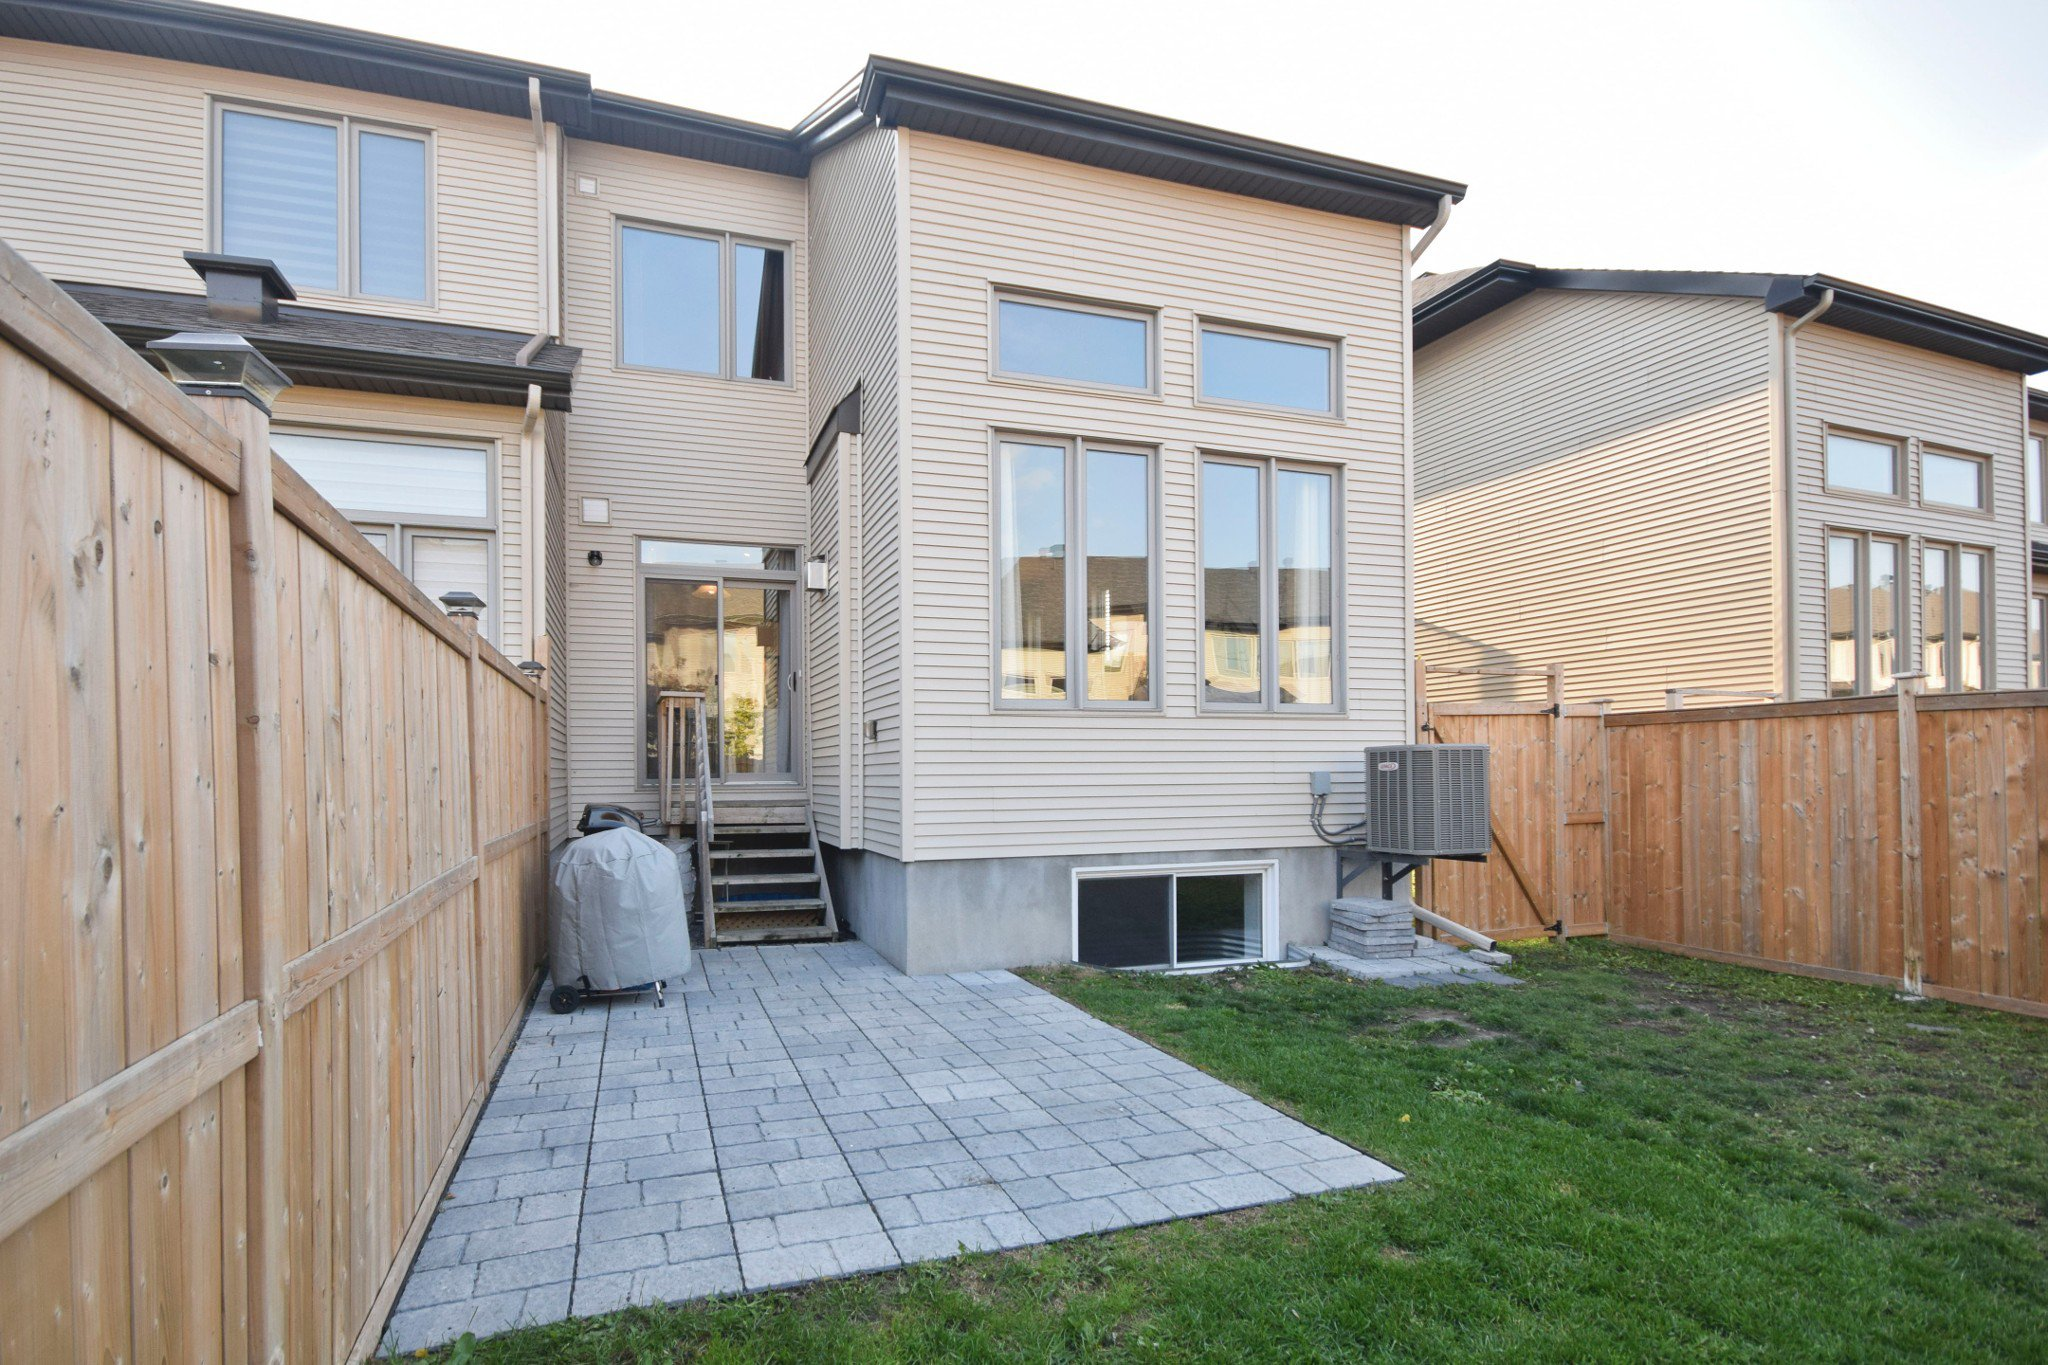 Photo 65: Photos: 131 Popplewell Crescent in Ottawa: Cedargrove / Fraserdale House for sale (Barrhaven)  : MLS®# 1130335